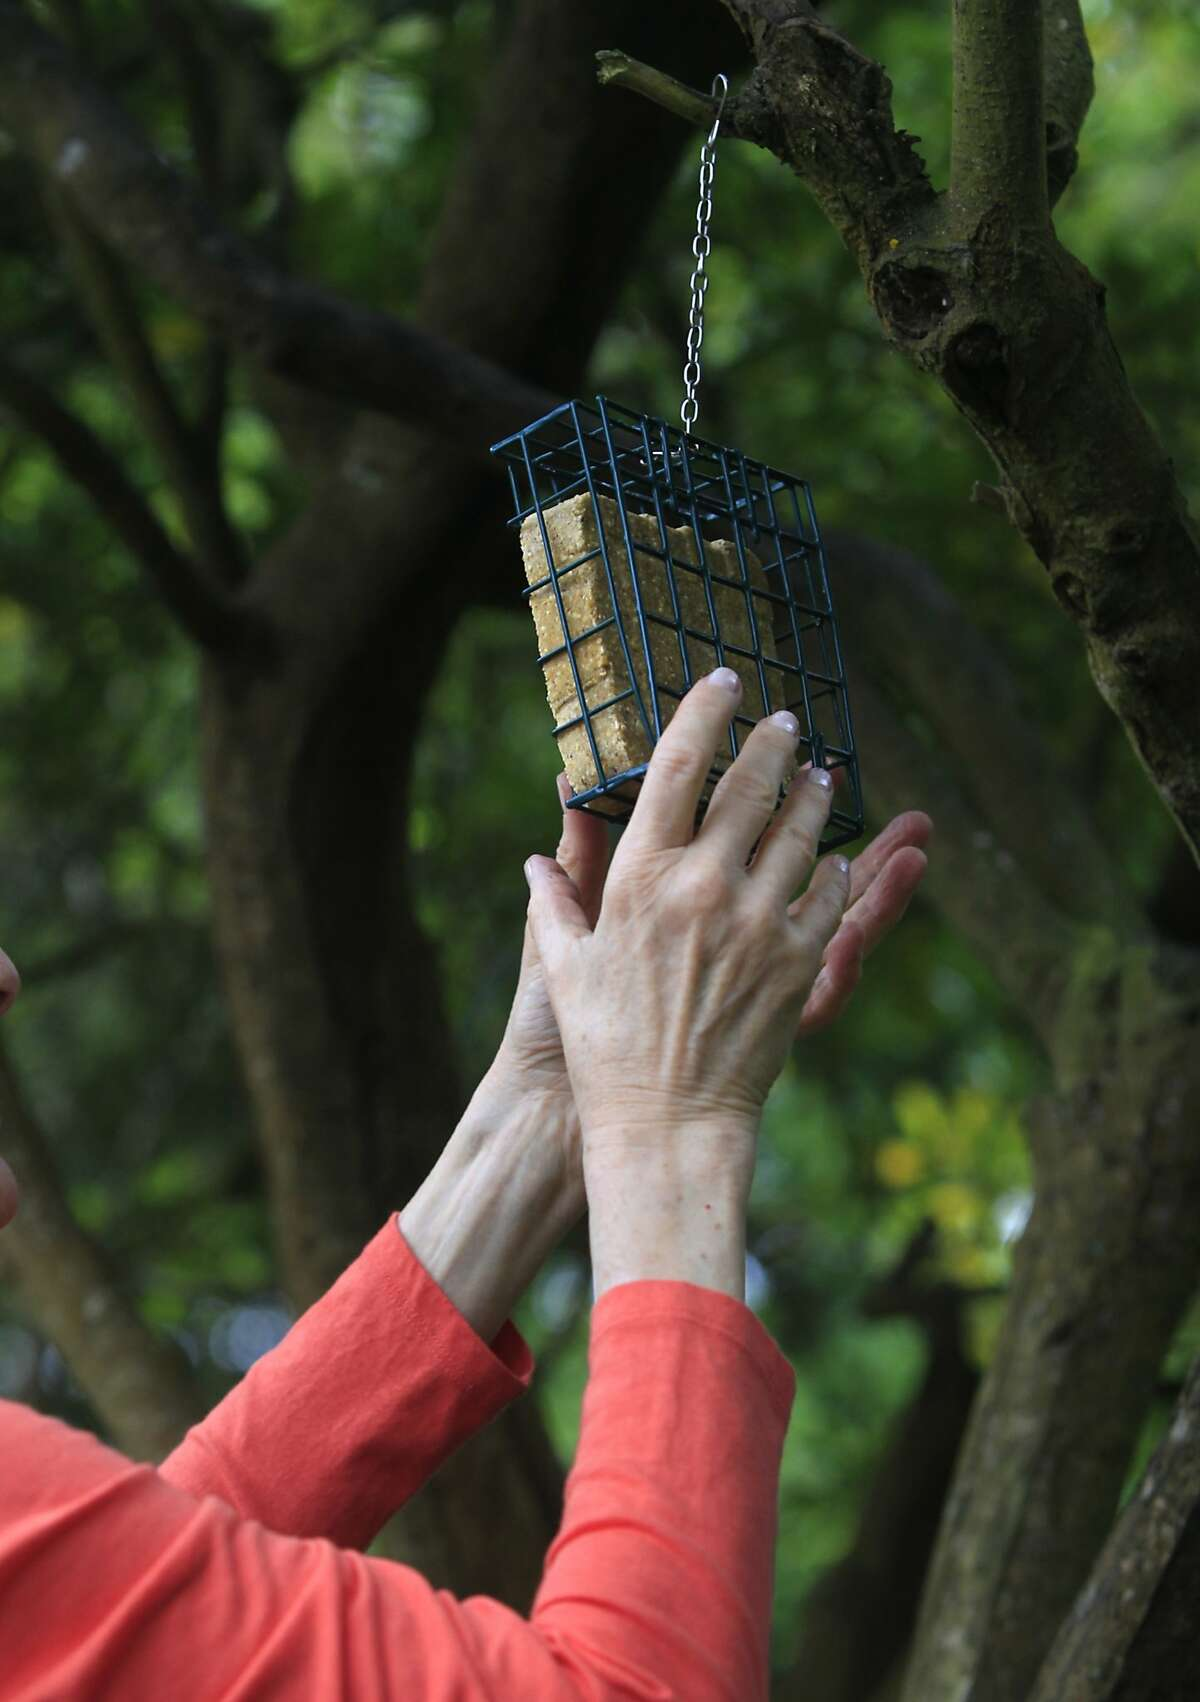 Judith Pynn hangs a suet bird feeder in the backyard of her Sunset District home in San Francisco, Calif. on Wednesday, Aug. 20, 2014. Pynn is among the first residents in the city to sign up for a program designed to curtail bird deaths from collisions with windows in residential buildings after a bird struck a second floor window of her home and died.